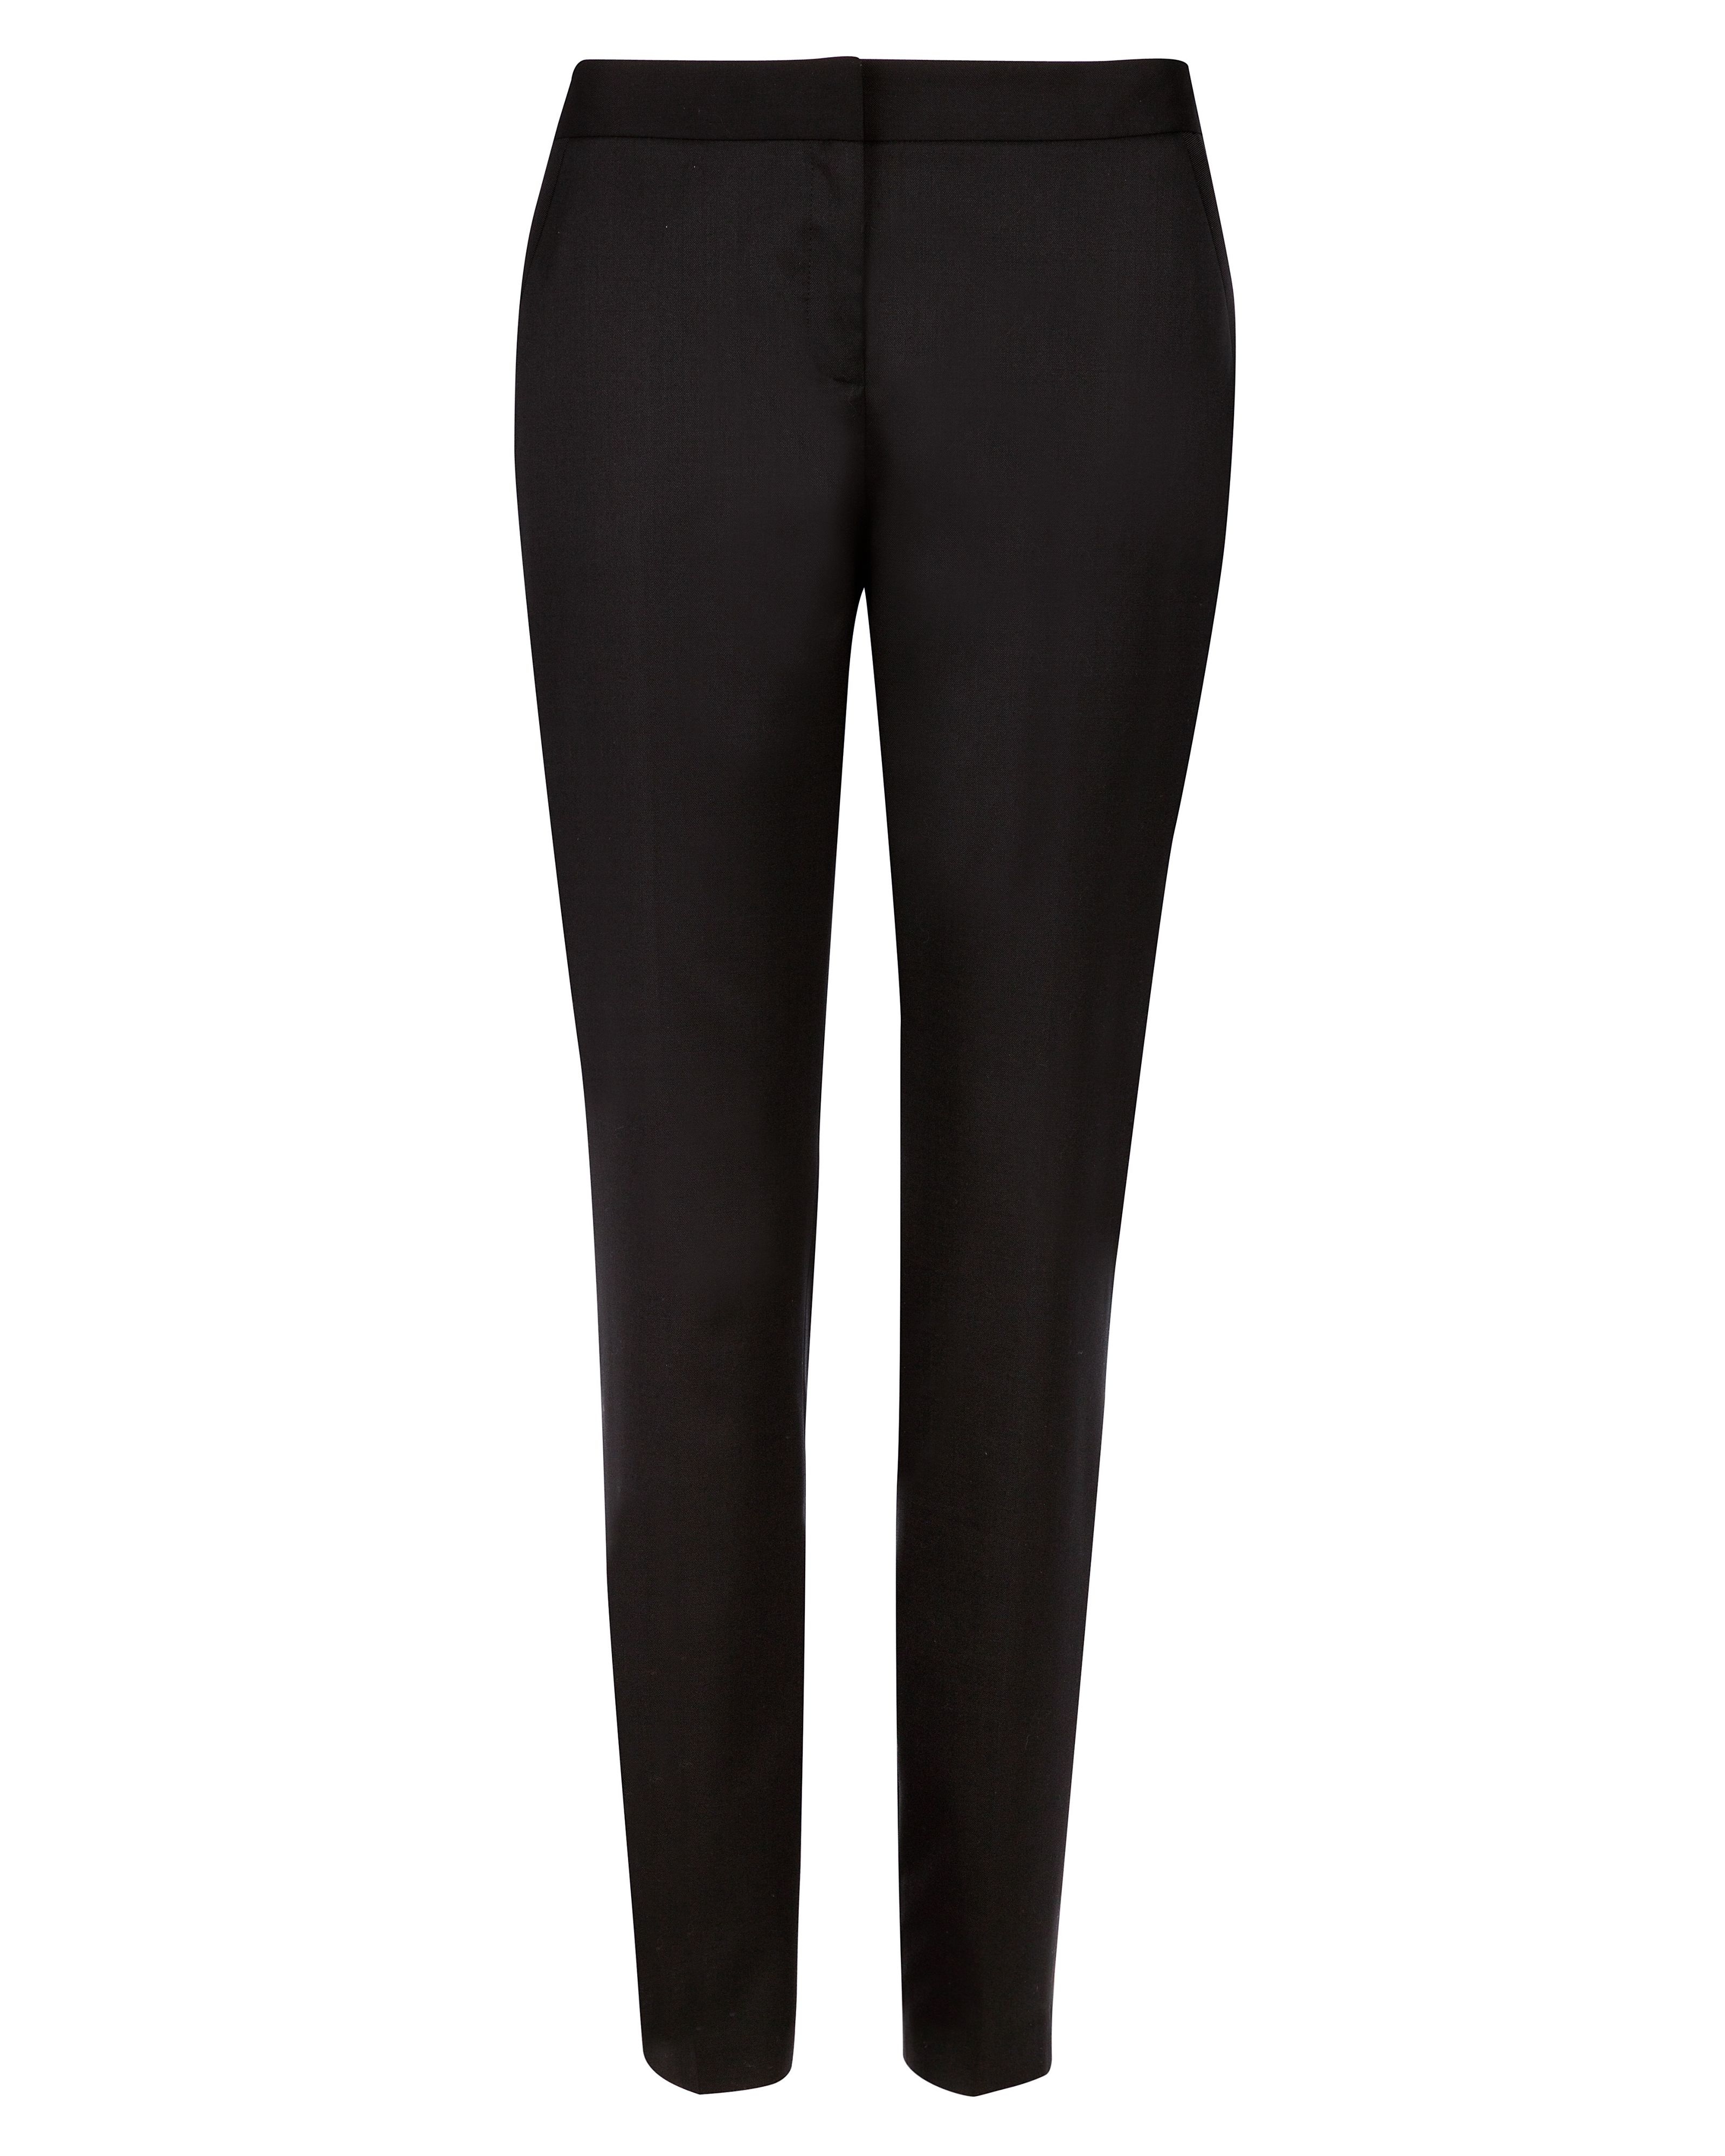 Quinnet timeless suit trousers